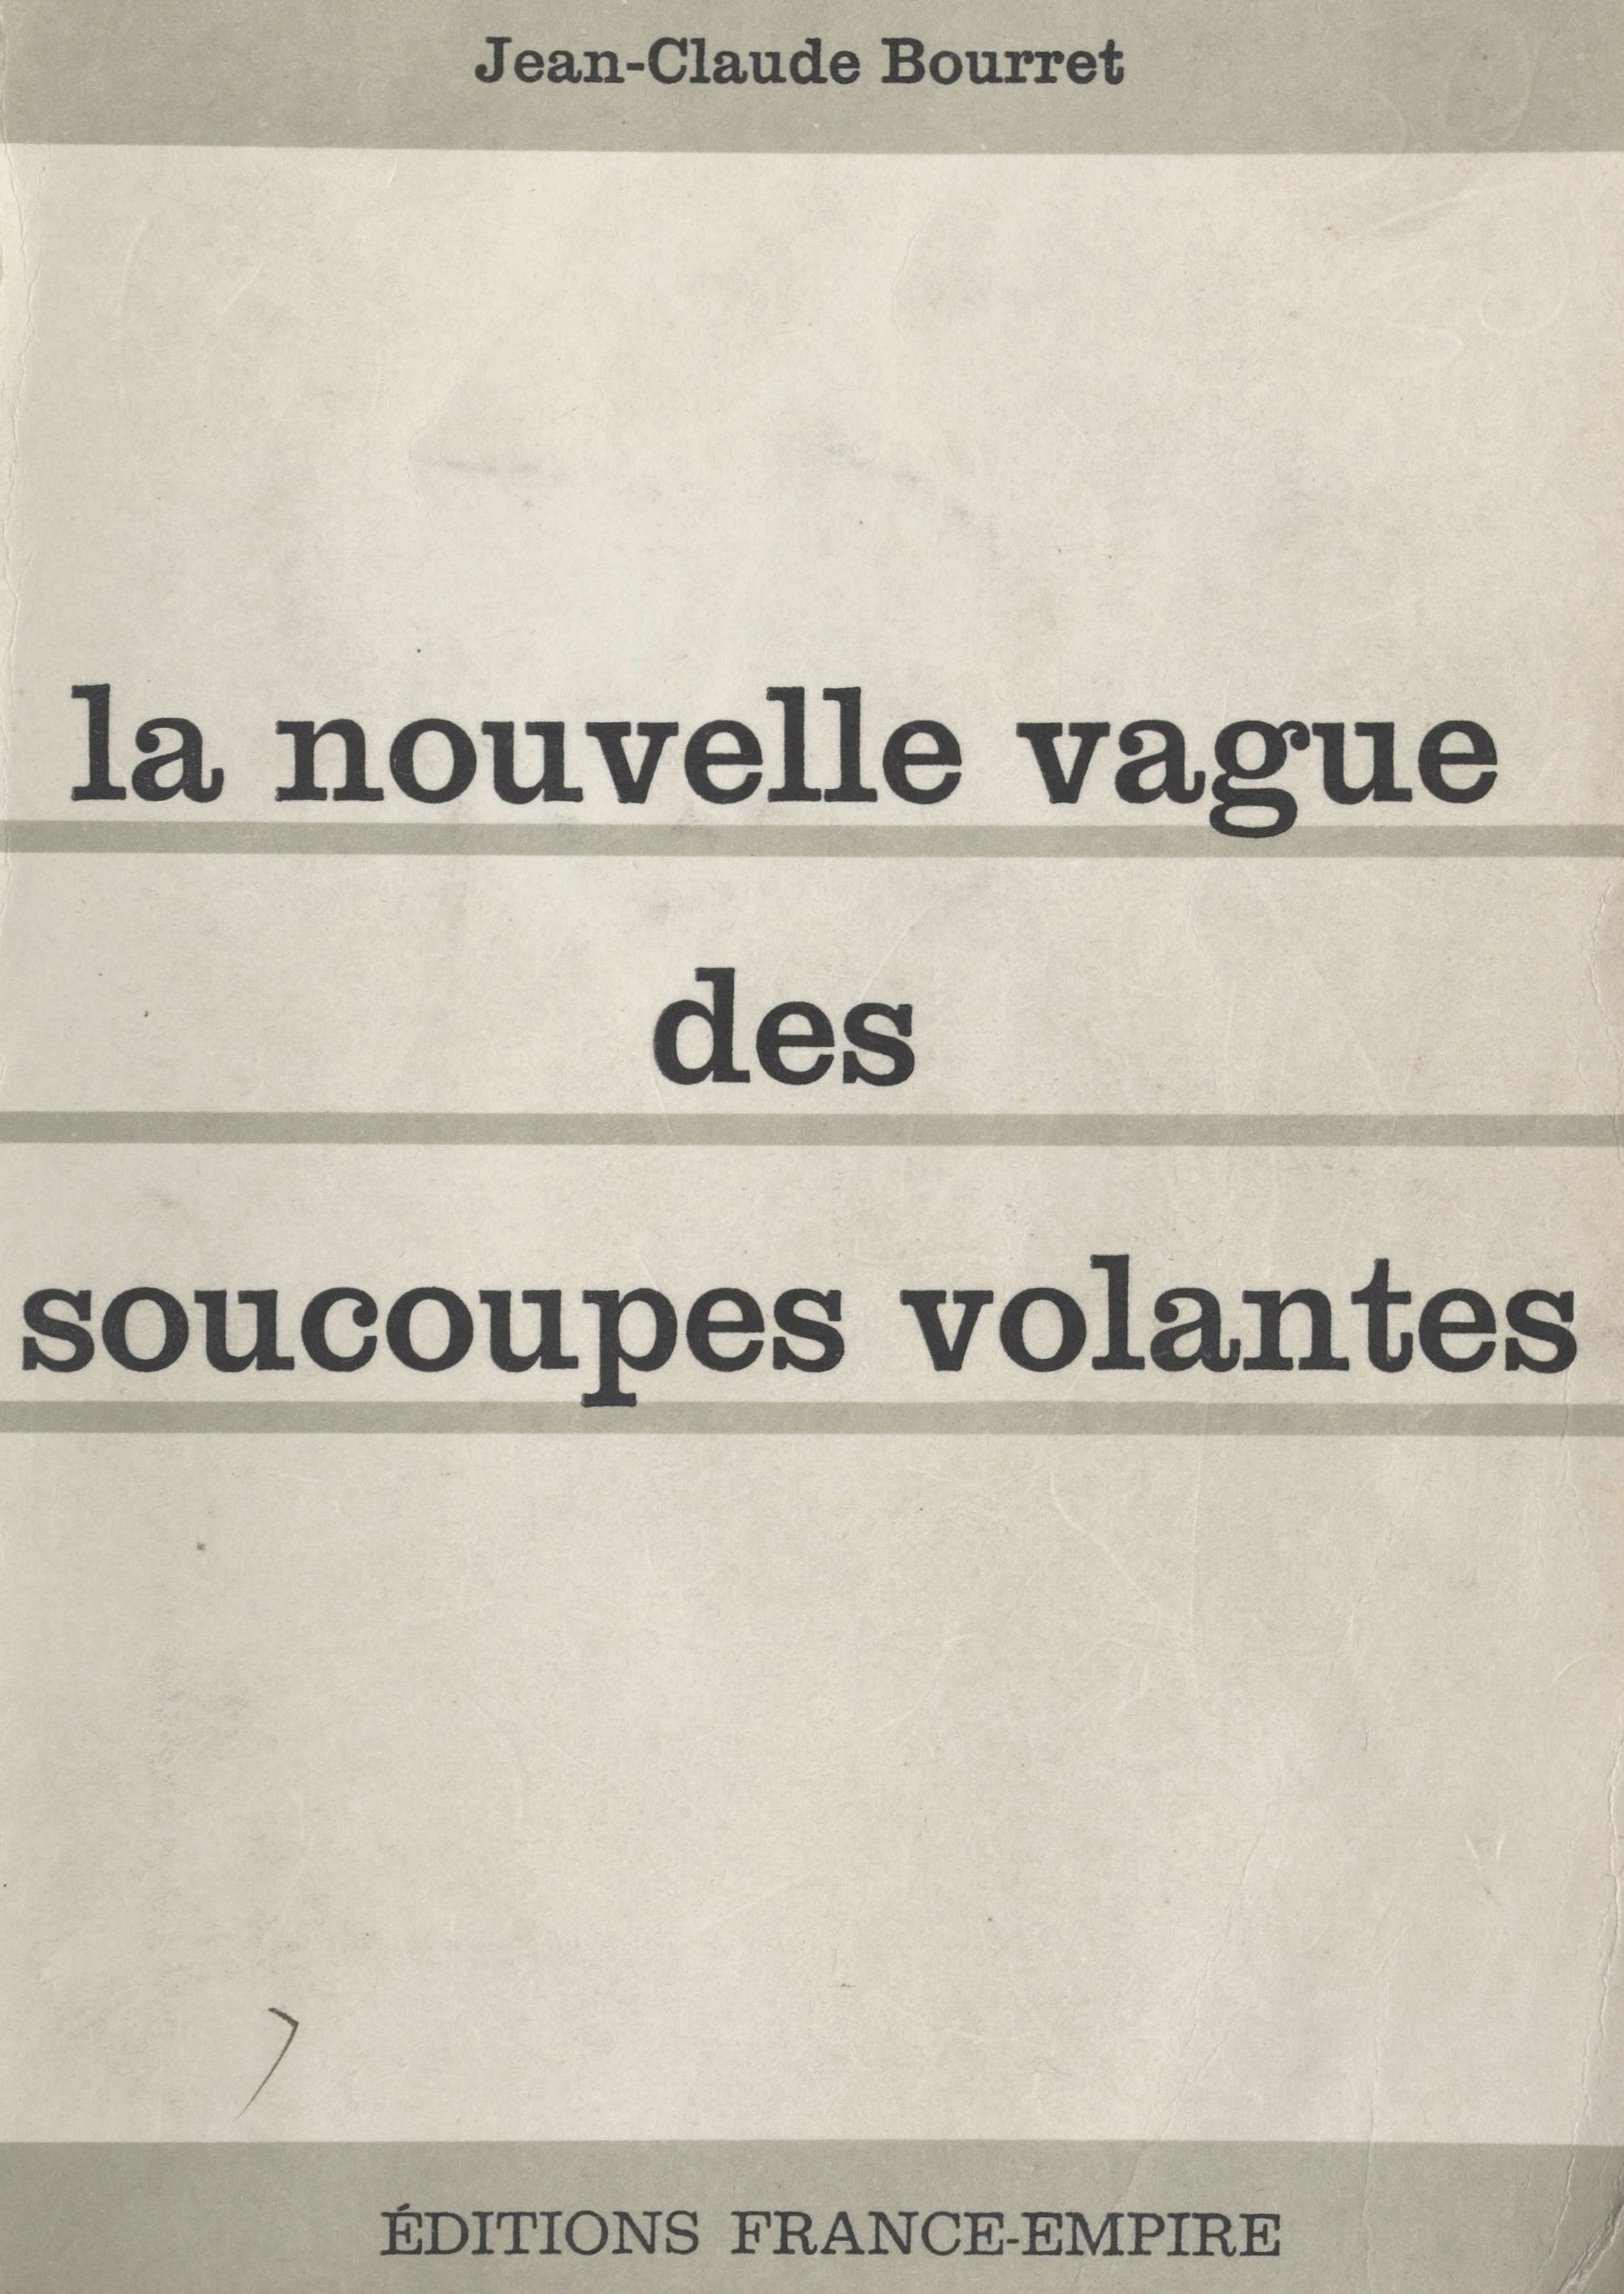 La nouvelle vague des soucoupes volantes - Jean-Claude Bourret